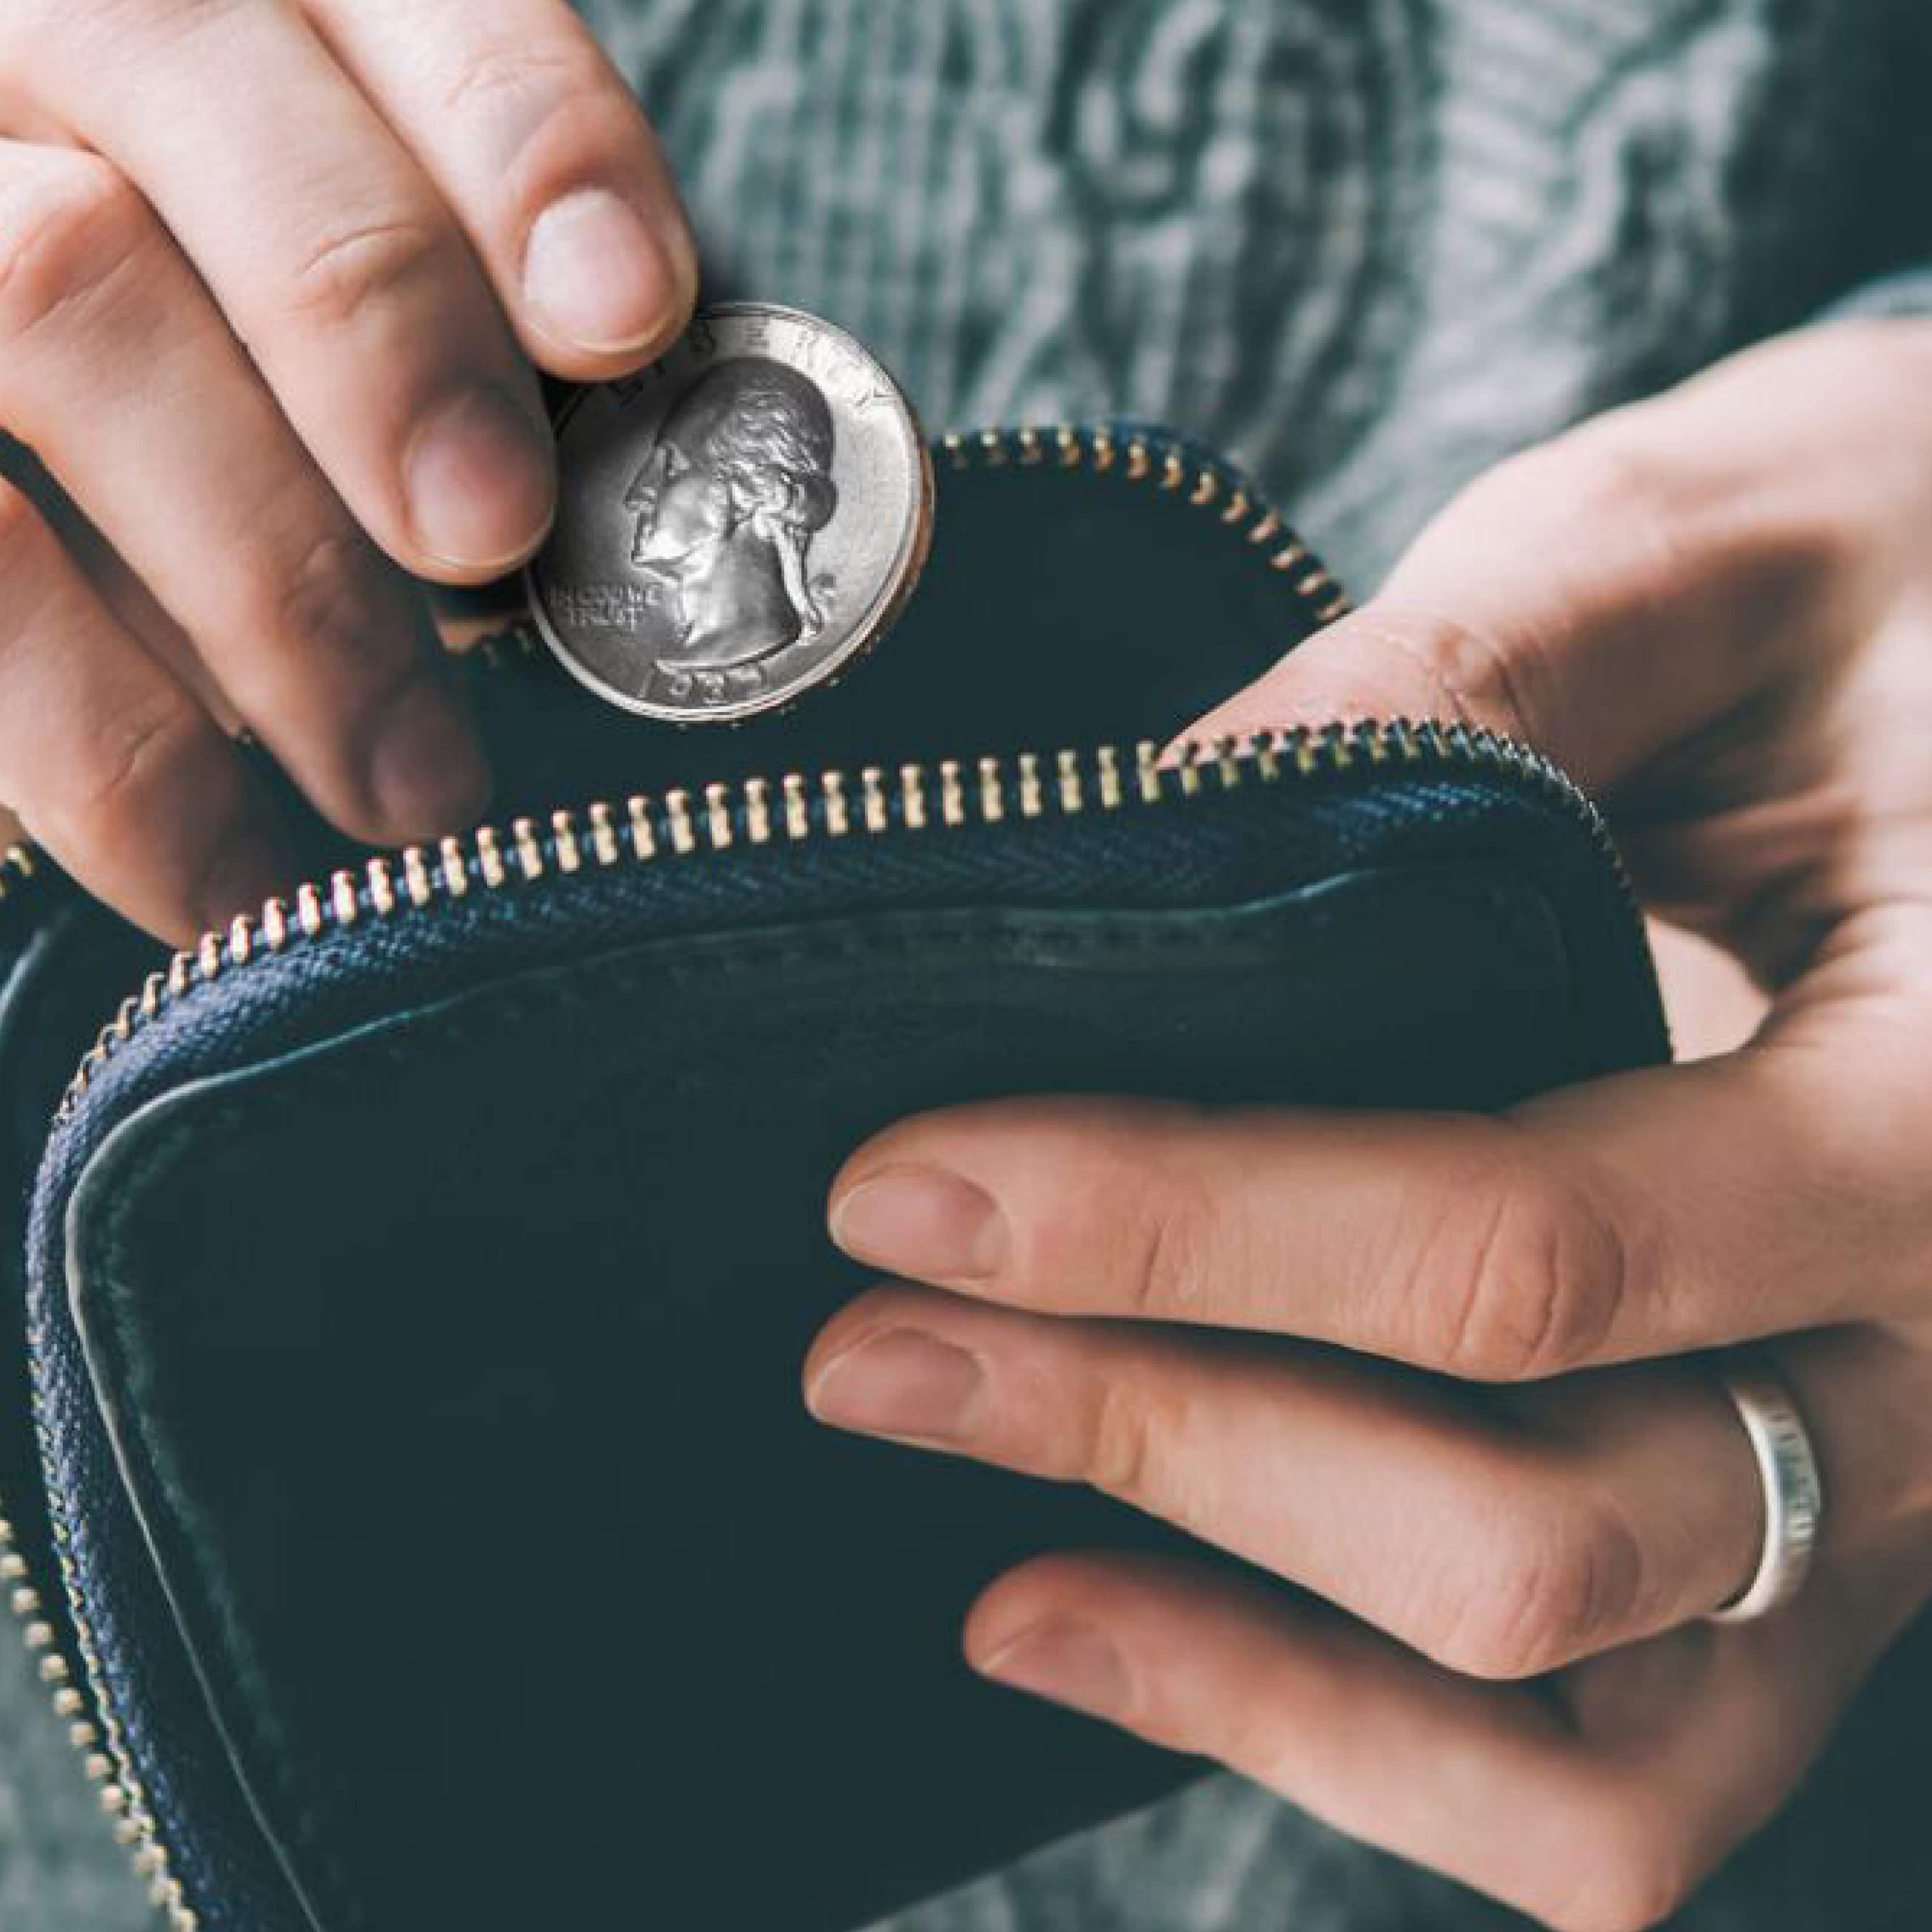 Worrying about money can get downright scary, but the good news is, there IS help available and you are NOT alone. Facing your fears about money is the first step in taking control of your finances. Here are 8 things you can do right now to lessen your money worries and come out on top.